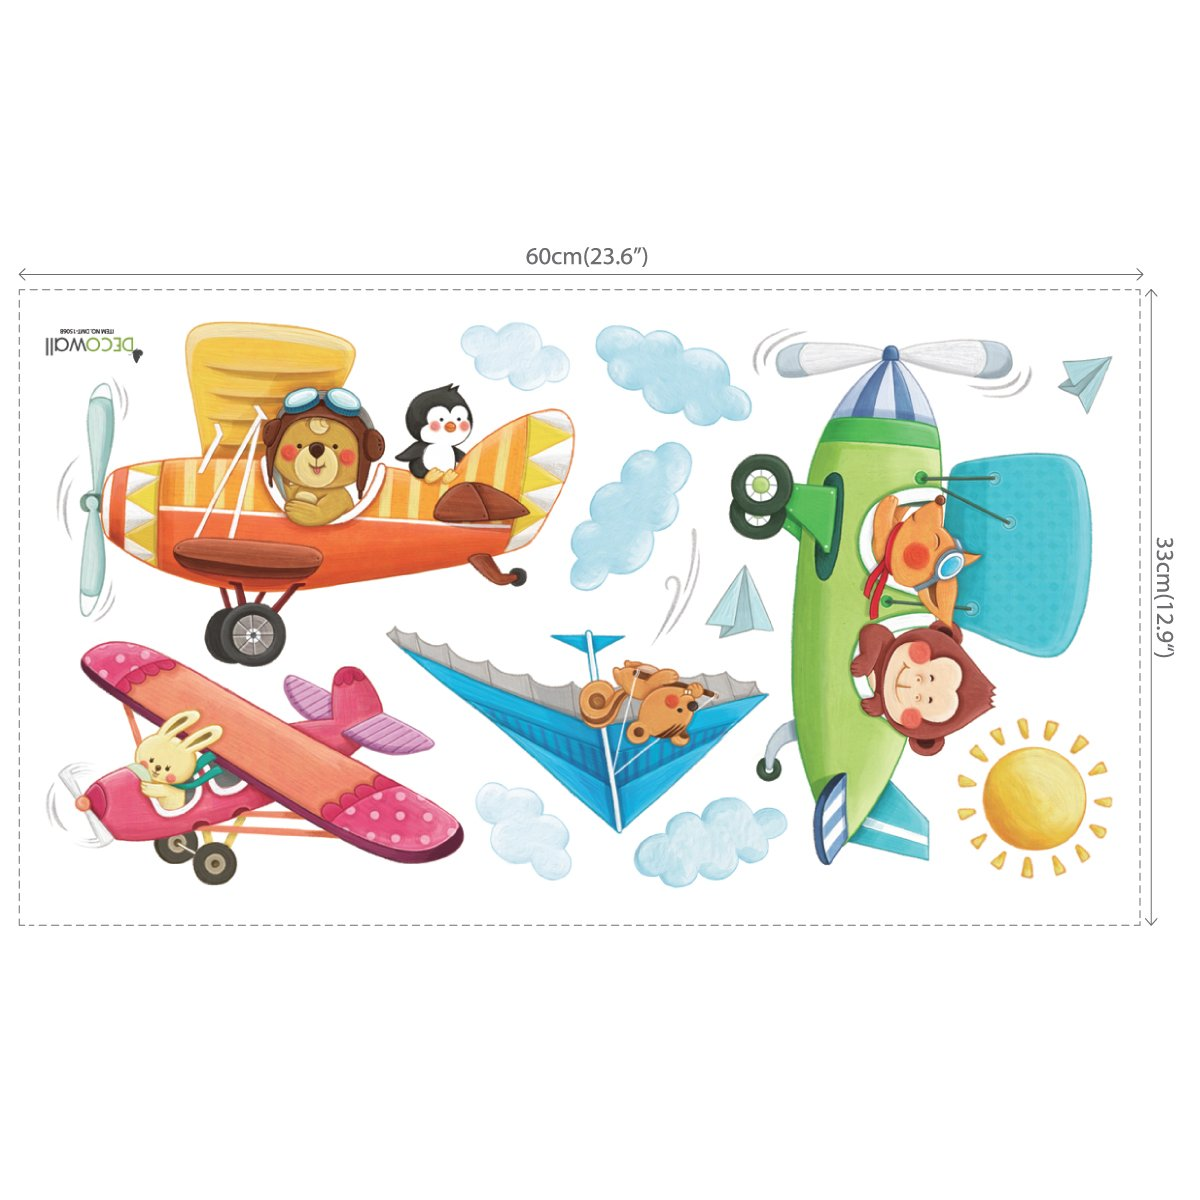 Small DECOWALL DS-8026 Animal Biplanes Kids Wall Stickers Wall Decals Peel and Stick Removable Wall Stickers for Kids Nursery Bedroom Living Room